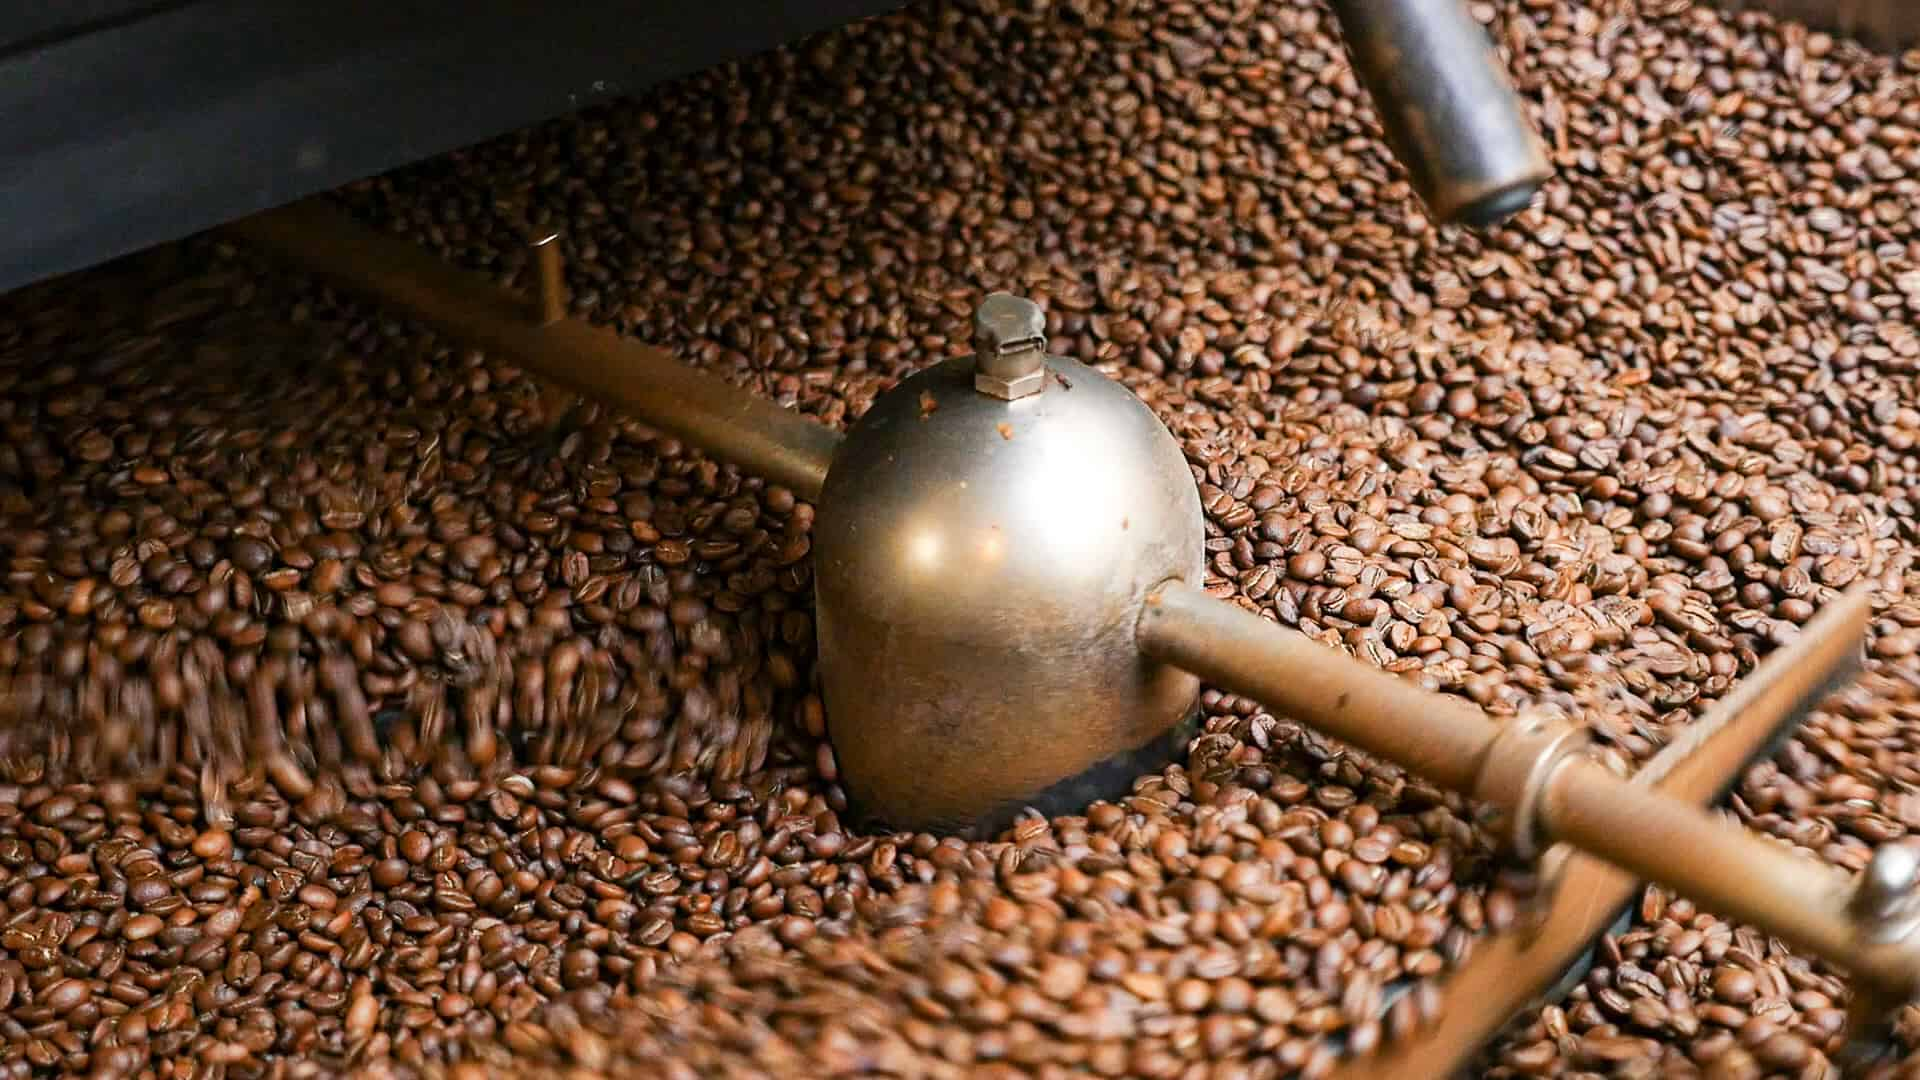 What's Freshness of Roasted Coffee